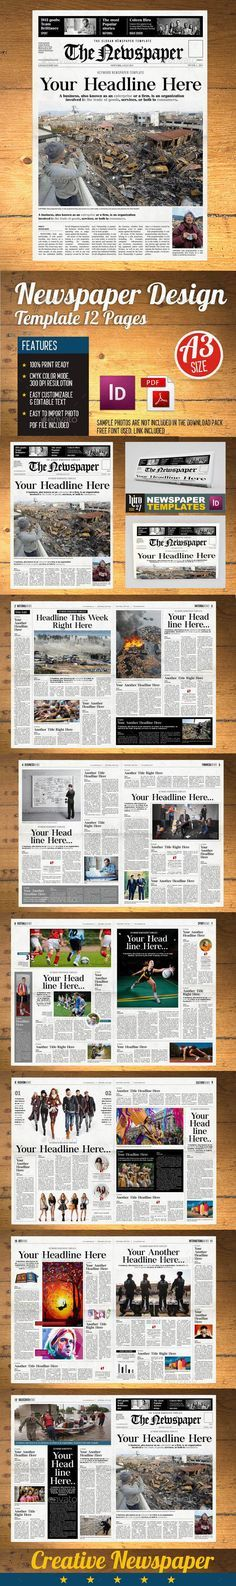 Newspaper (12 Page) Template (vol2)